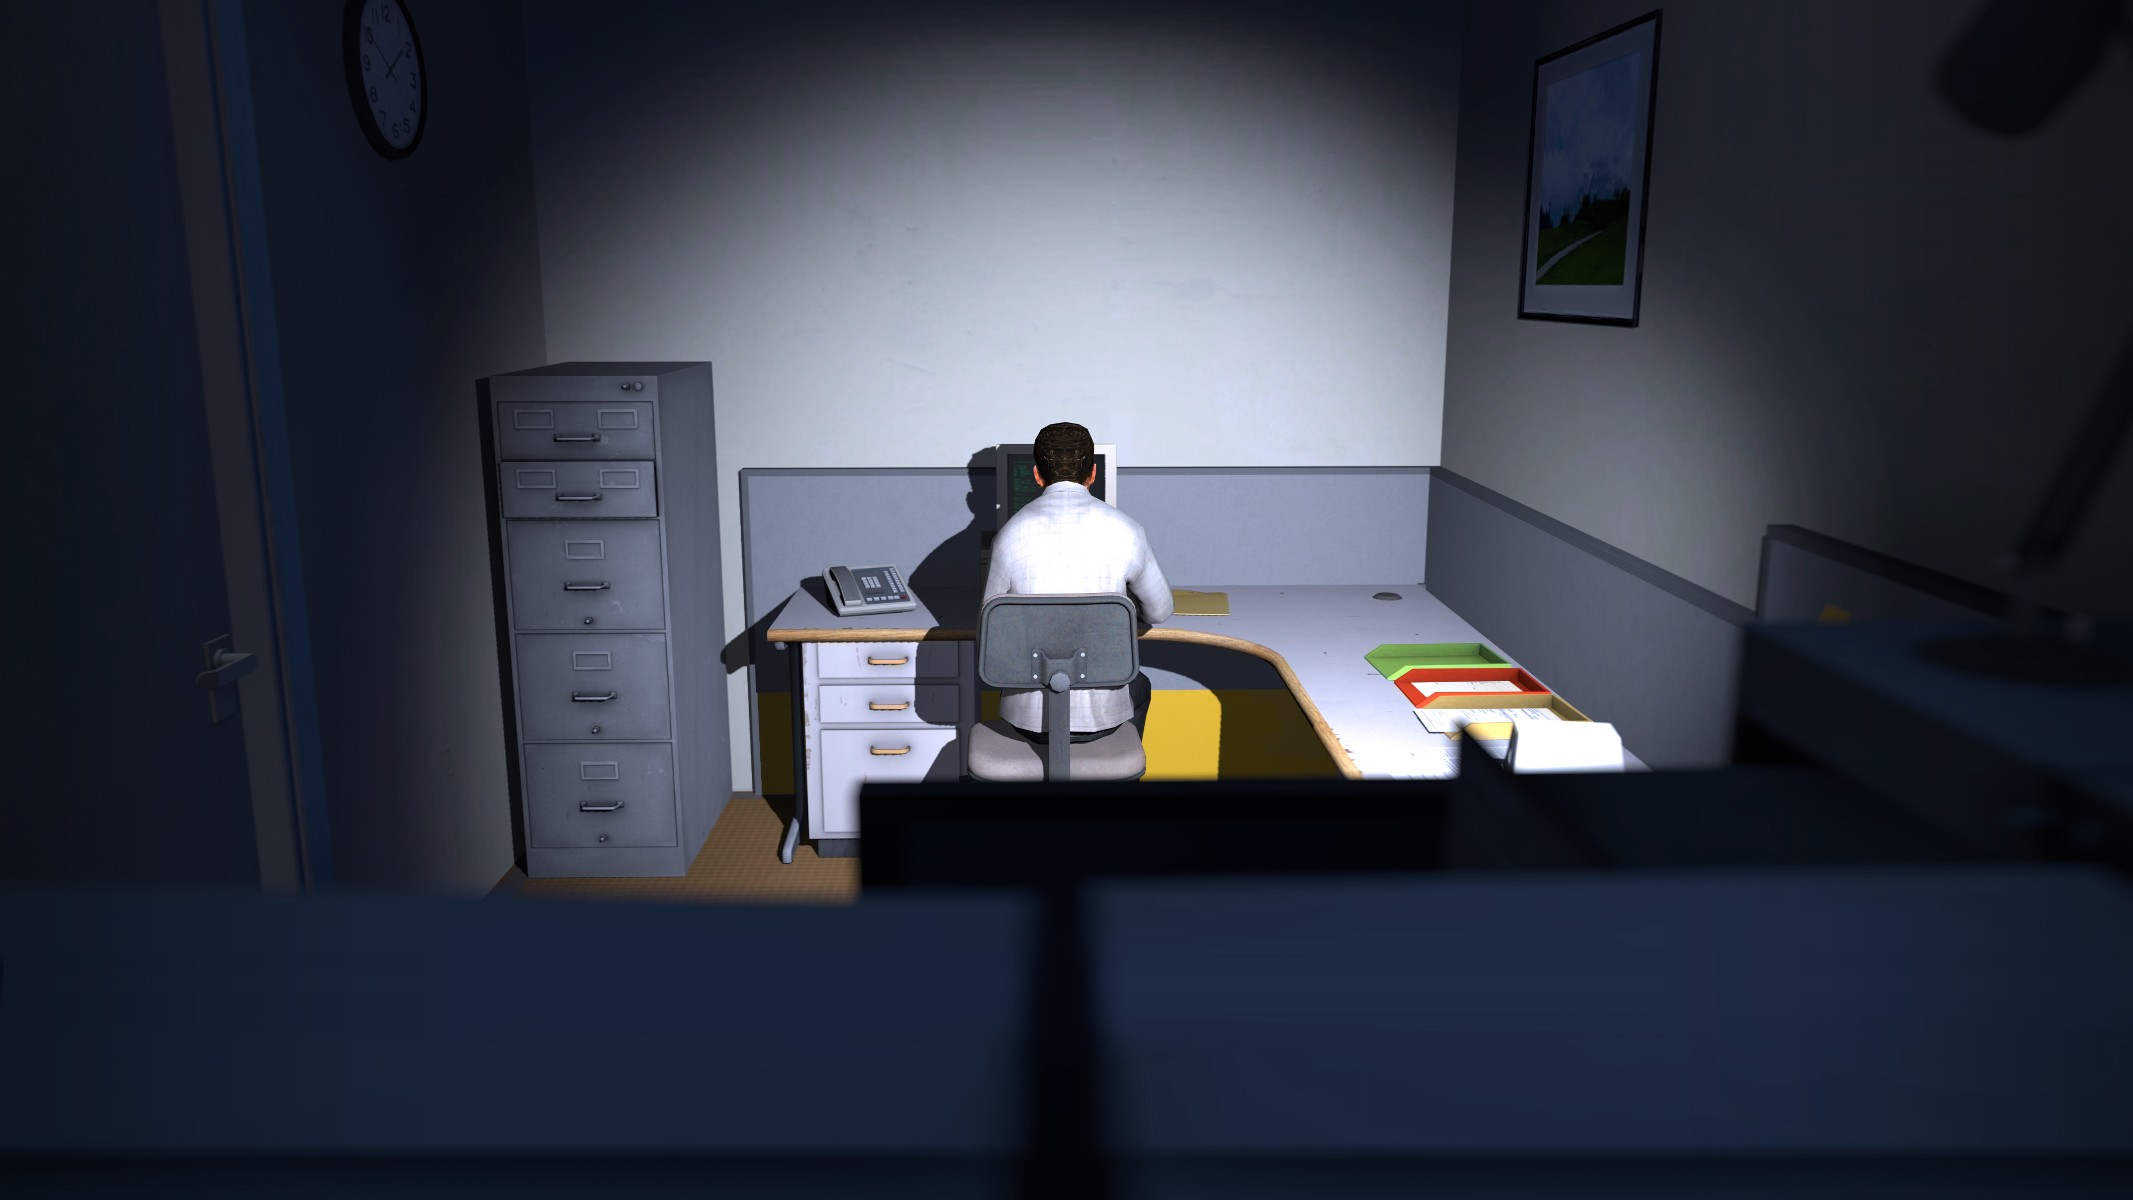 13. The Stanley Parable